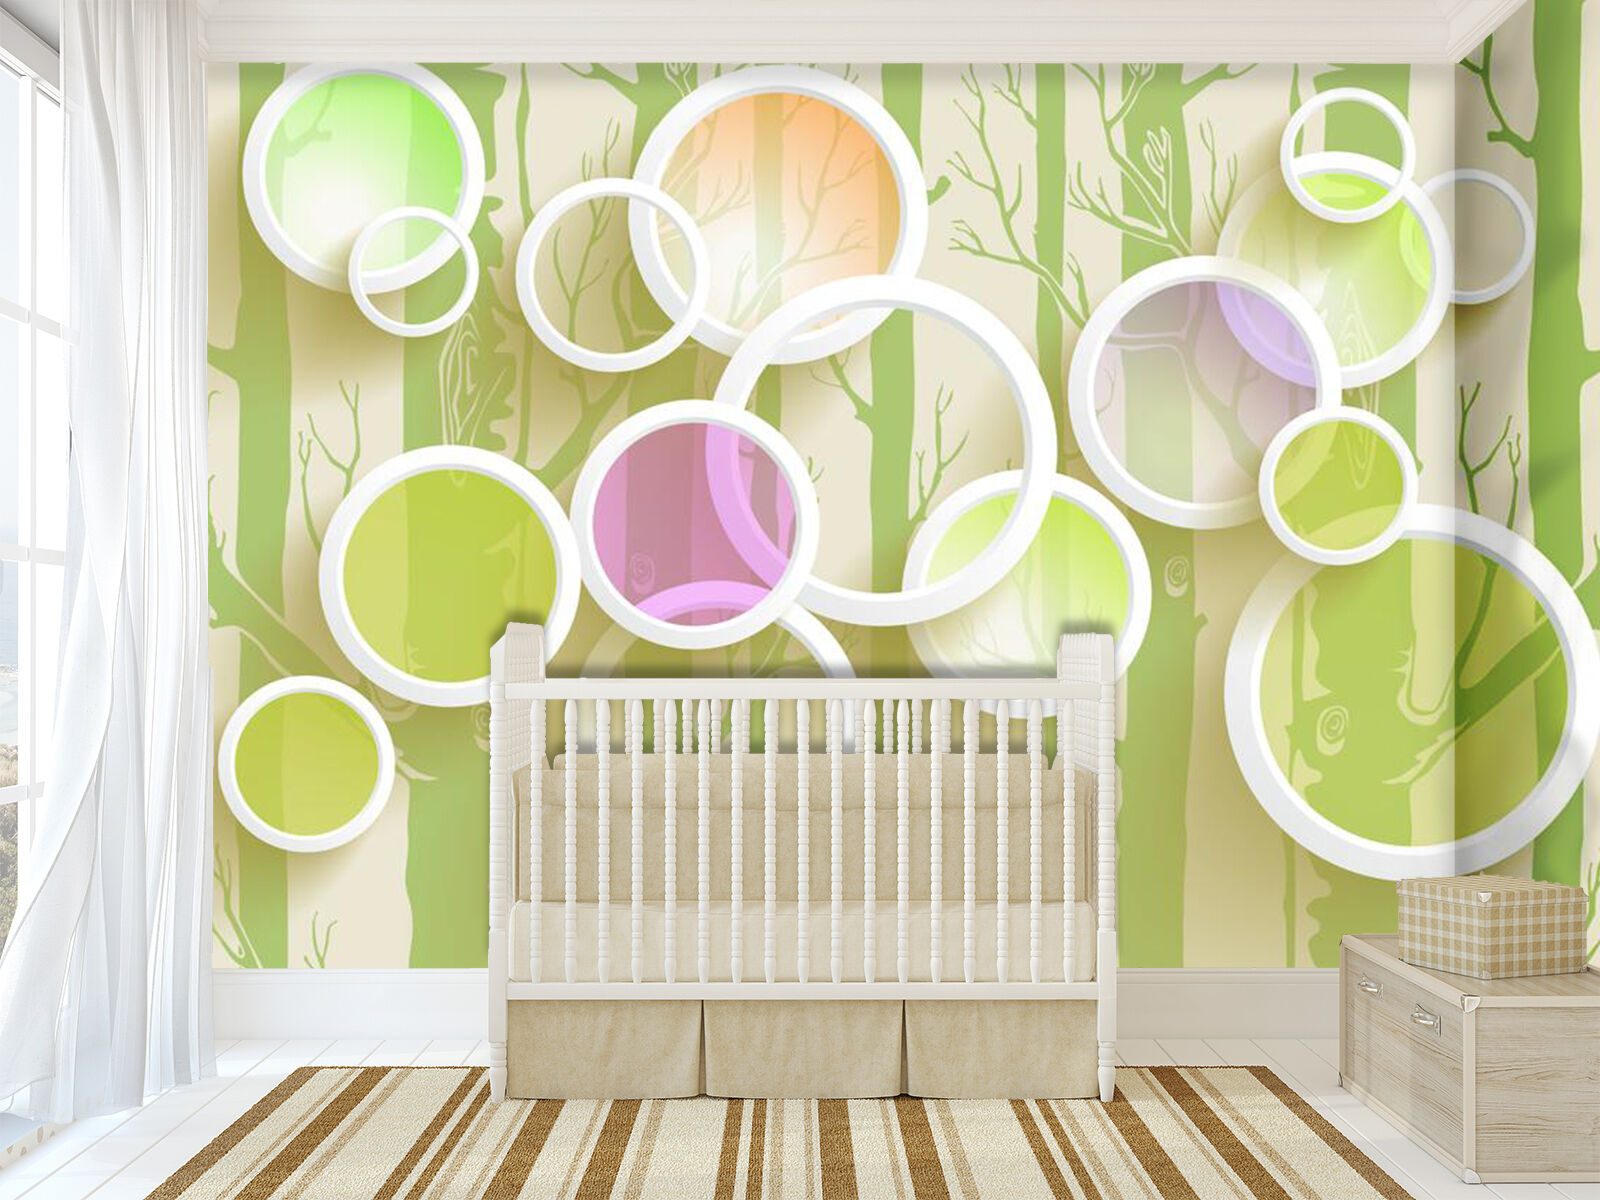 3D Farbeful tree painting Wall Paper Print Decal Wall Deco Indoor wall Mural